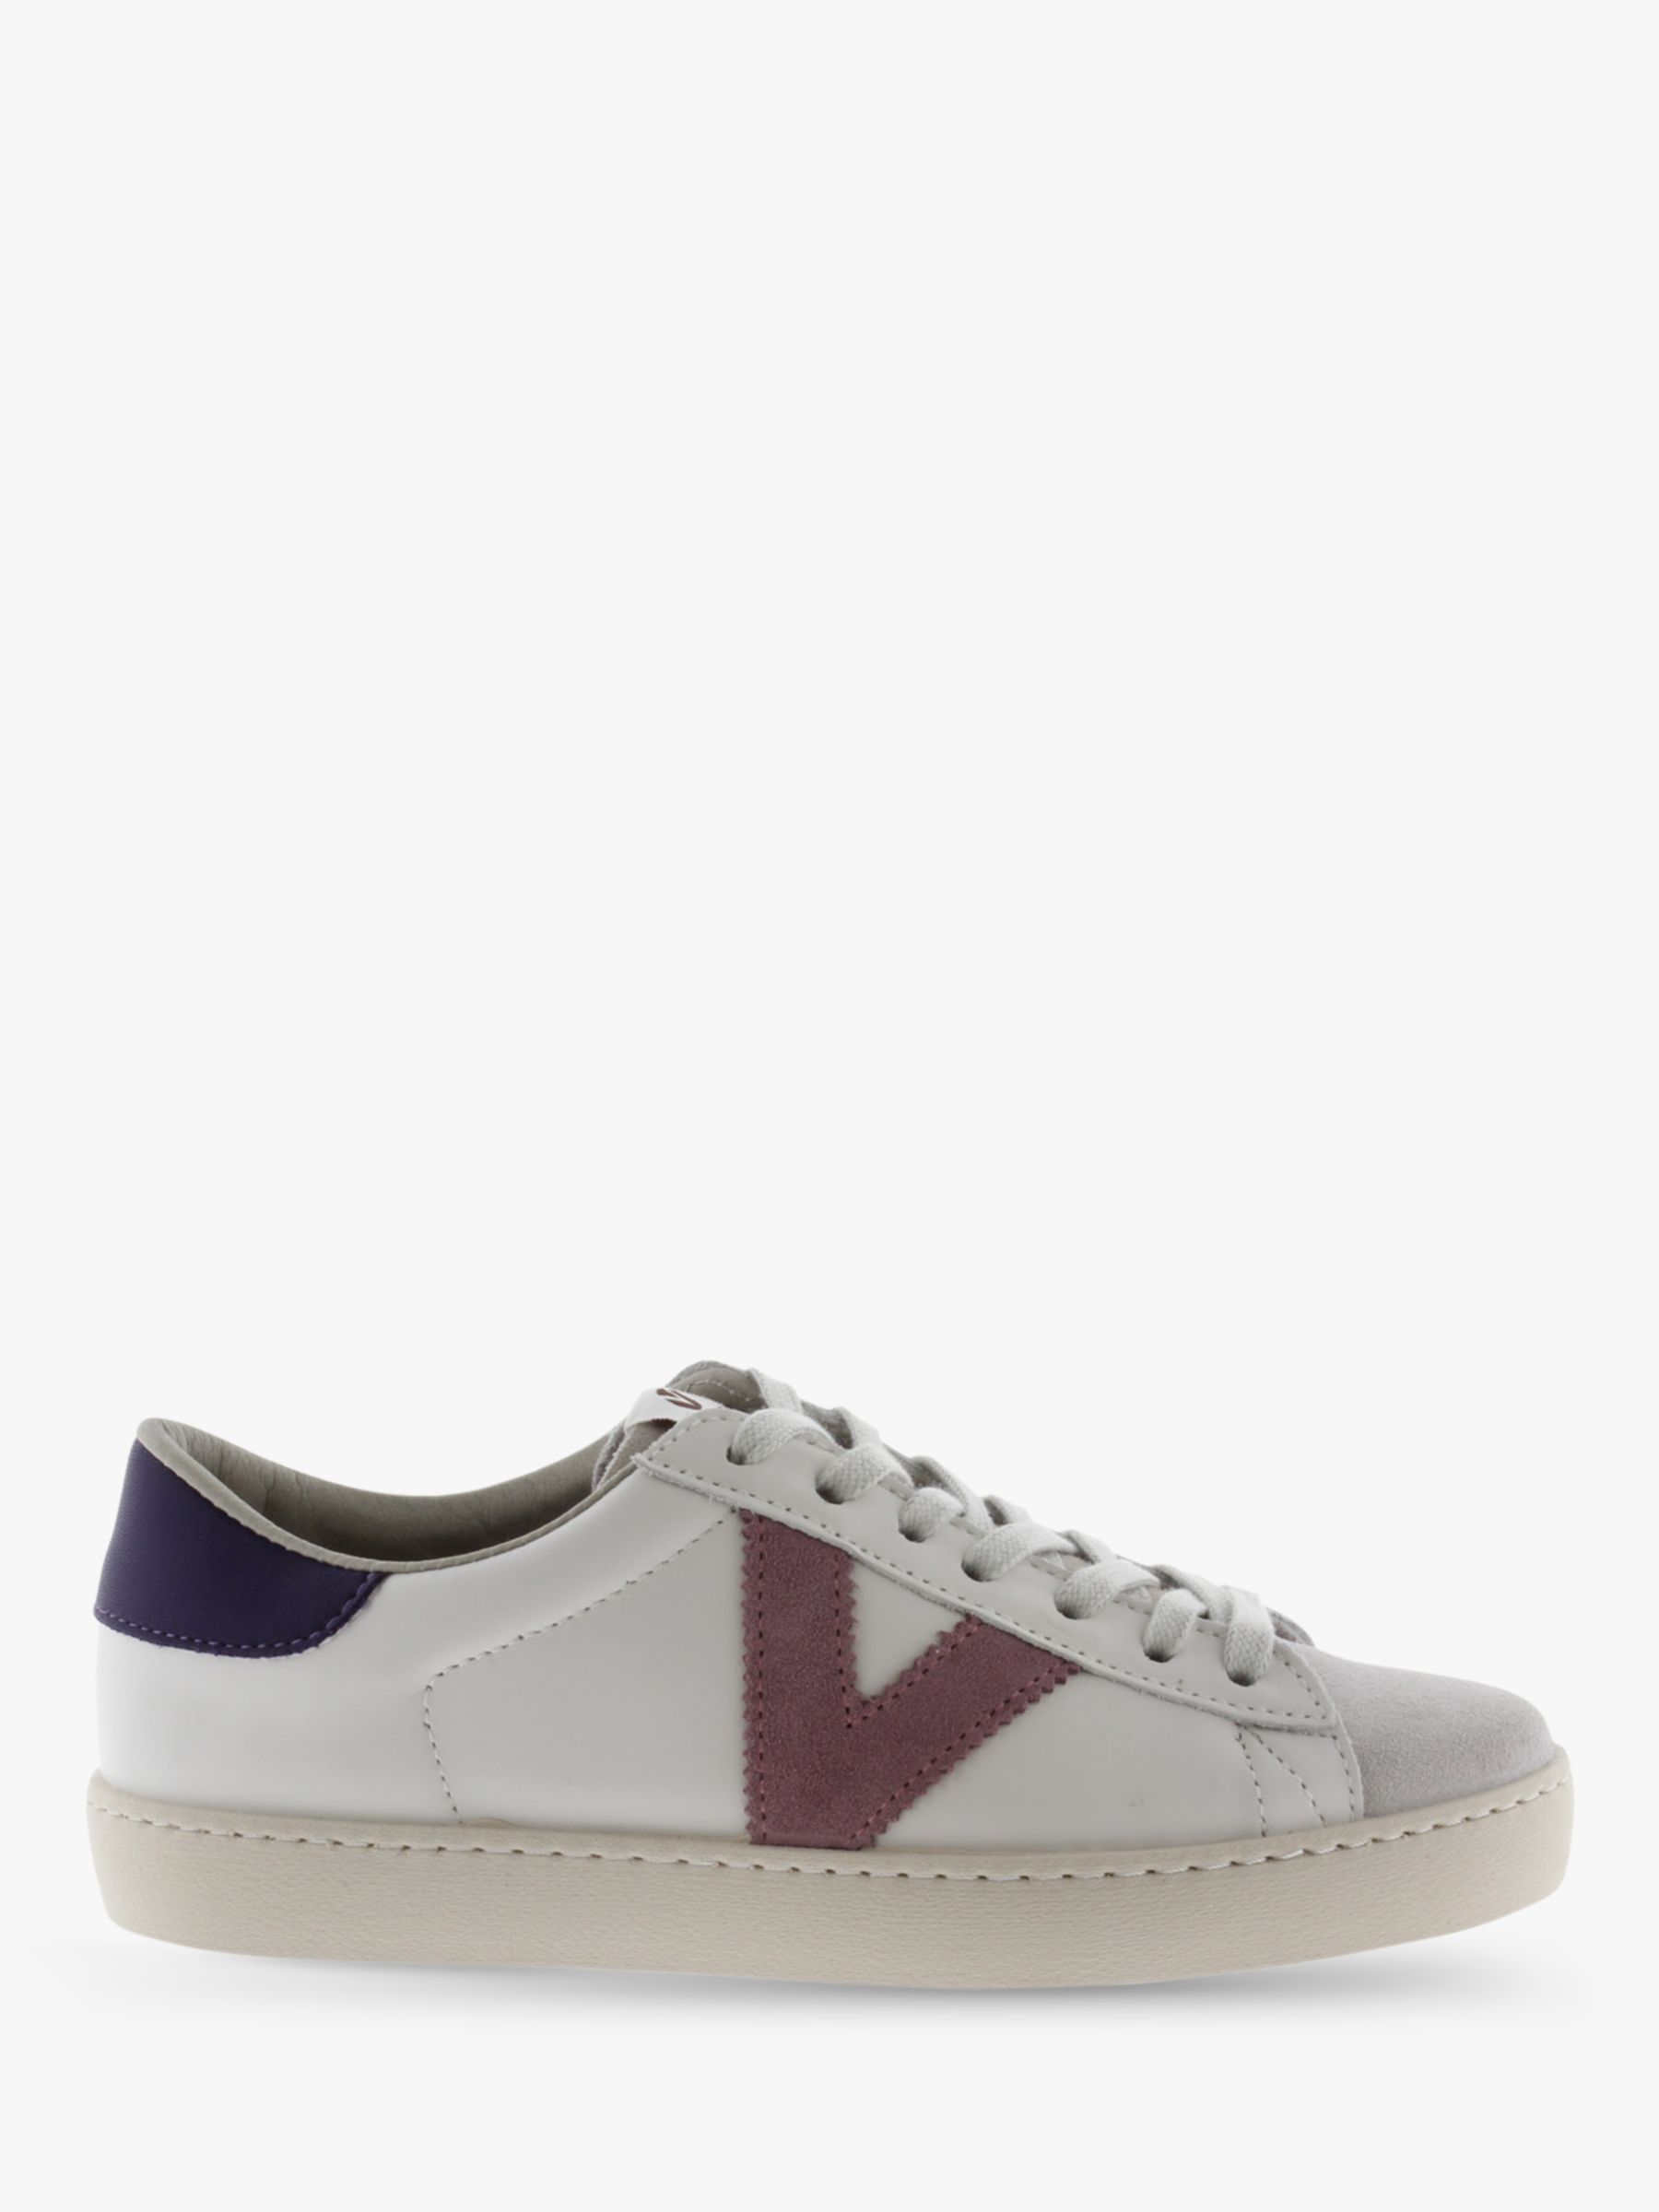 Victoria Shoes Victoria Shoes Berlin Contrast Detail Low Top Trainers, White/Multi